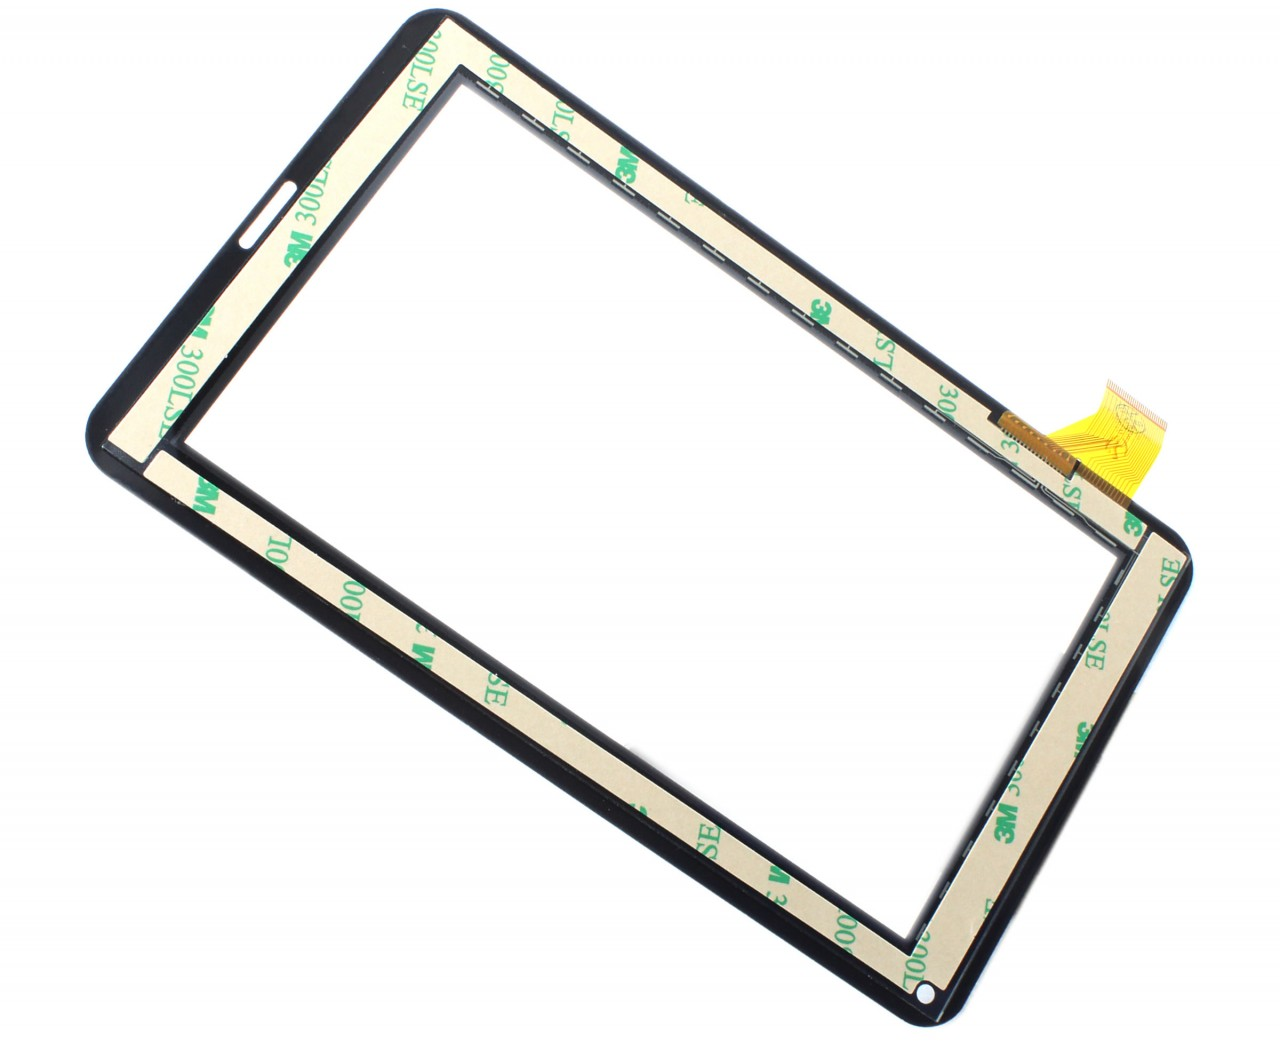 Touchscreen Digitizer Lenco CoolTab 70 Geam Sticla Tableta imagine powerlaptop.ro 2021